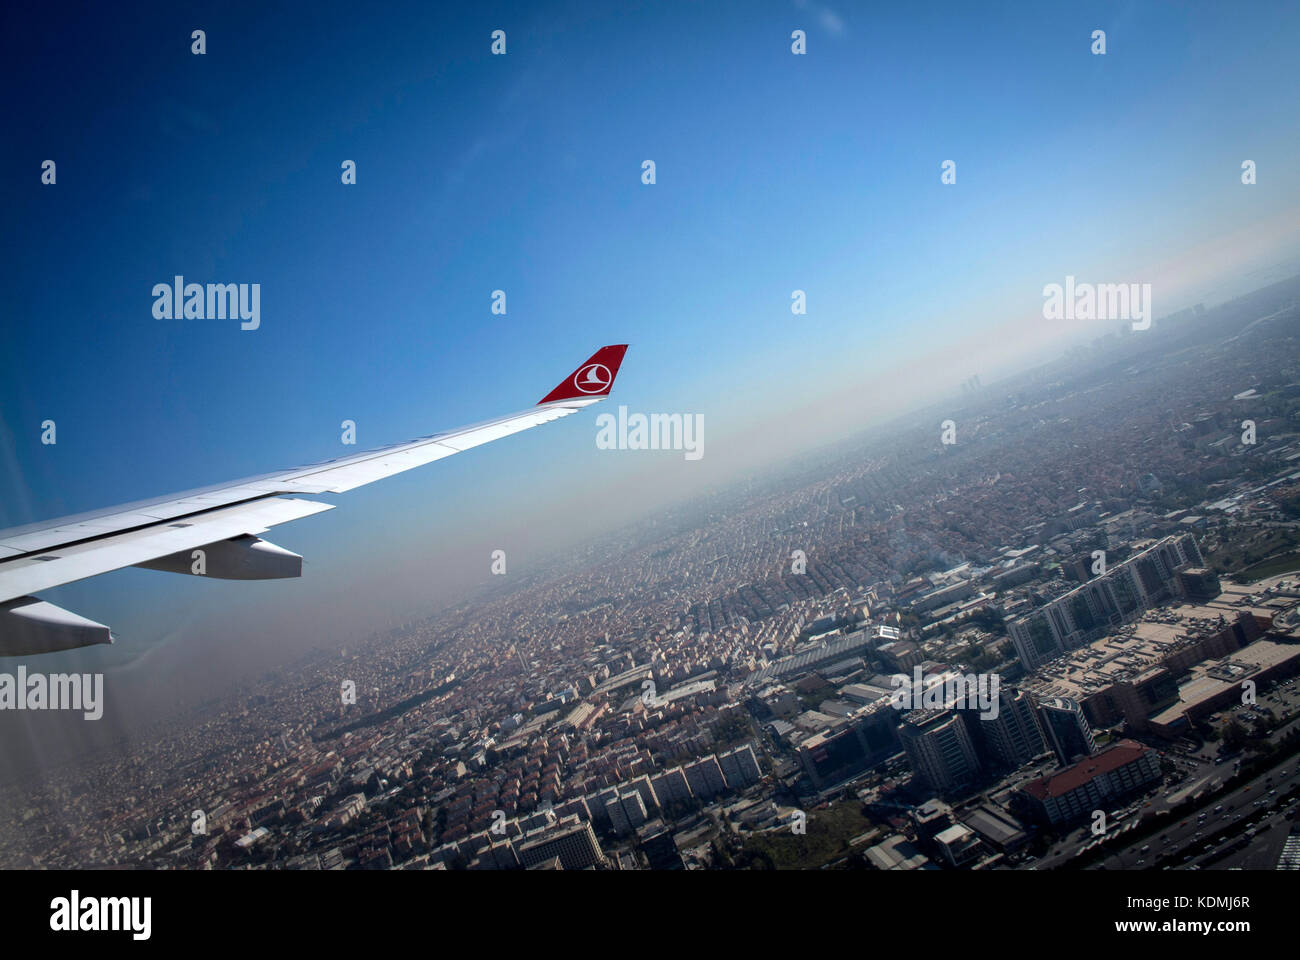 Take off from Istanbul airport in Turkey. - Stock Image